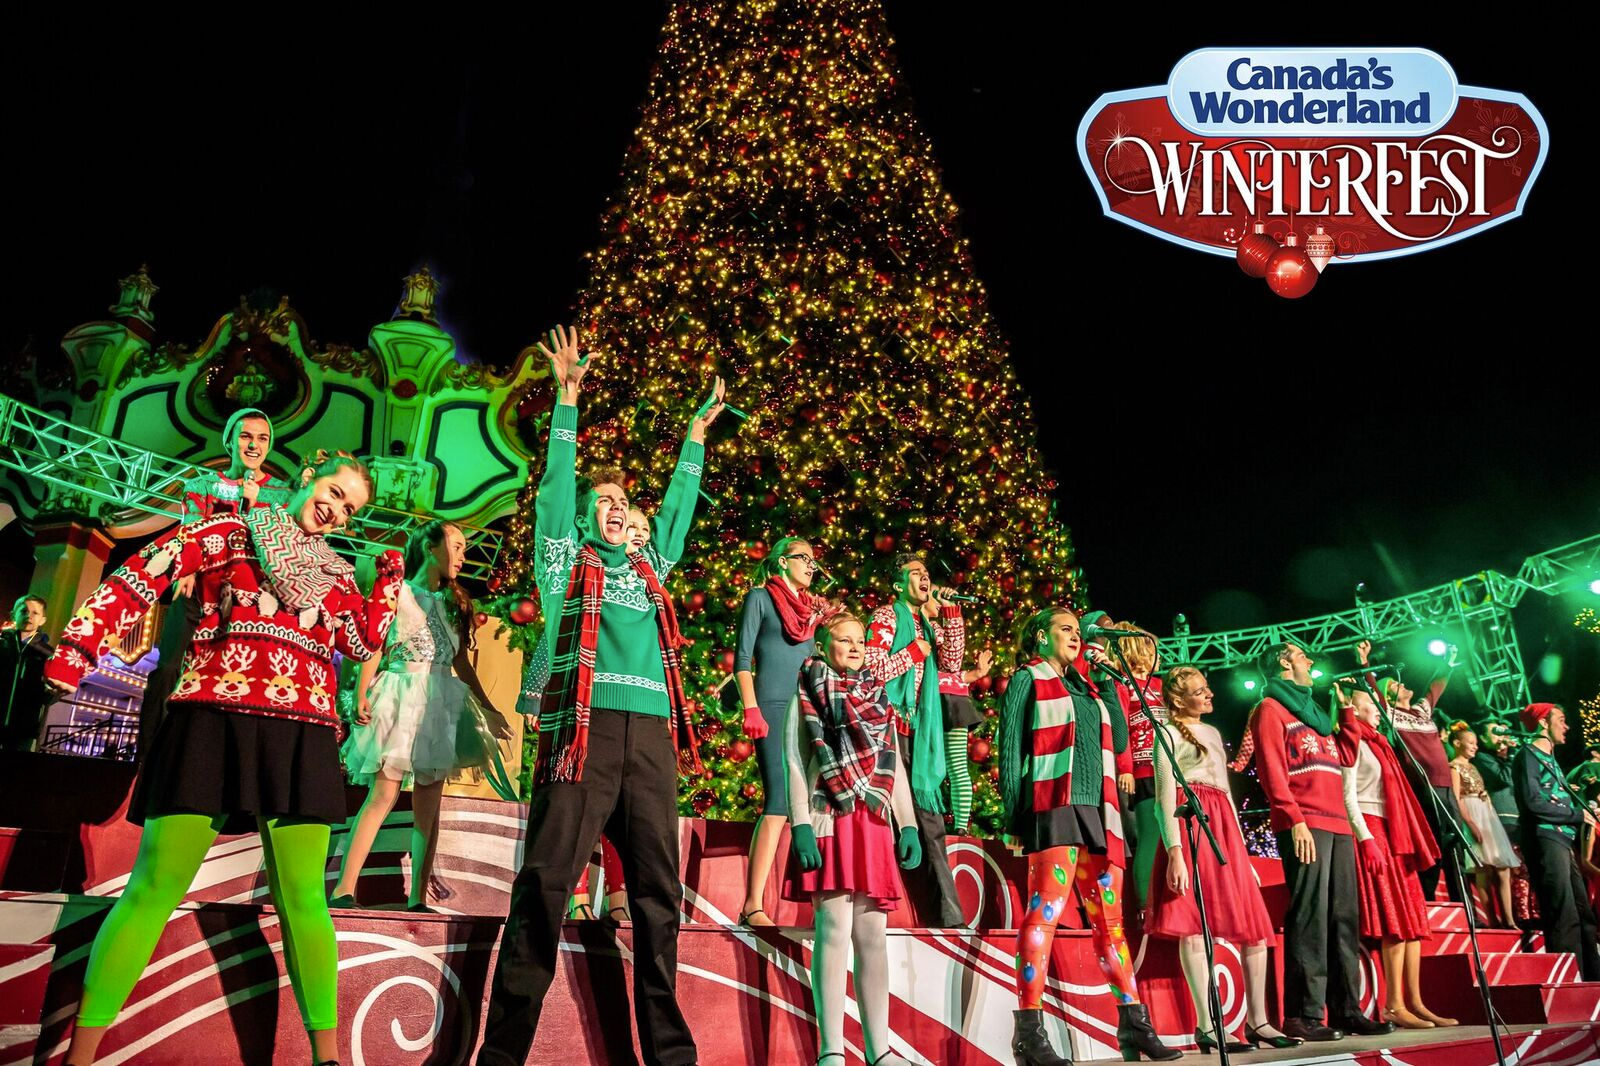 Christmas In Canada South Park.Canada S Wonderland Announces Winterfest And A New 245 Drop